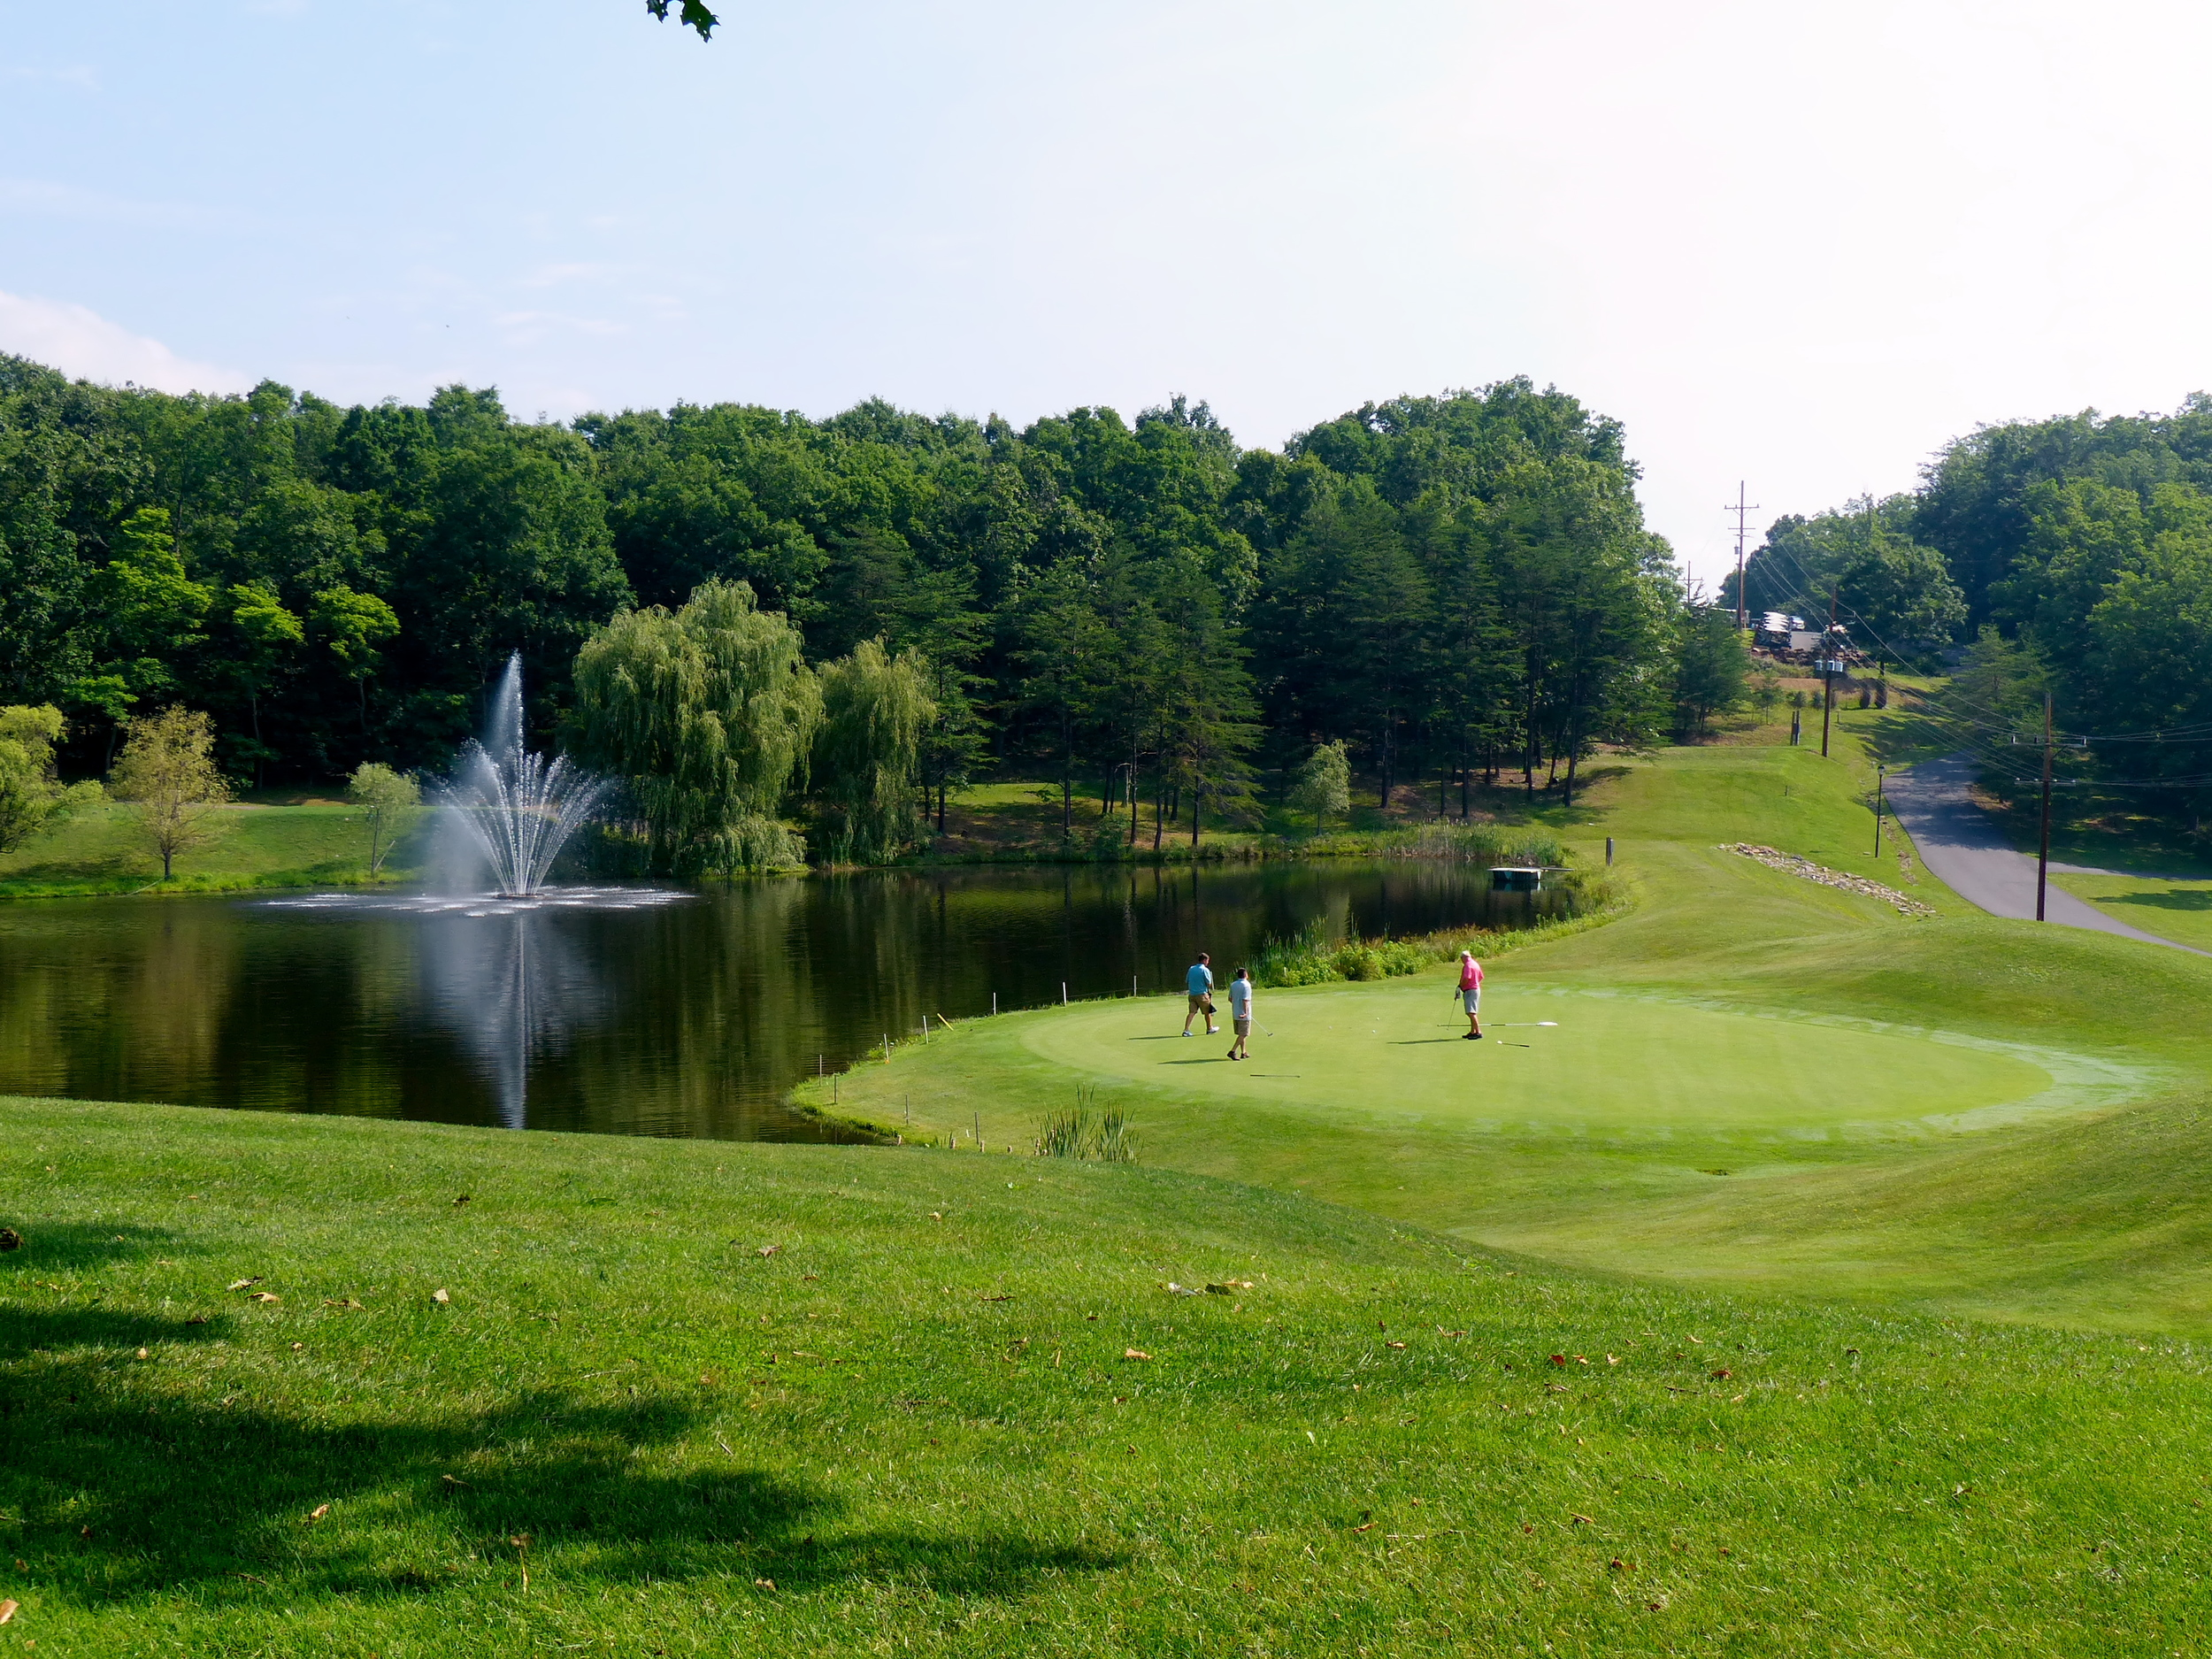 Fore-Sisters-Golf-Course-Rawlings-Teena-Bowers-Photography-1P1210312.jpg